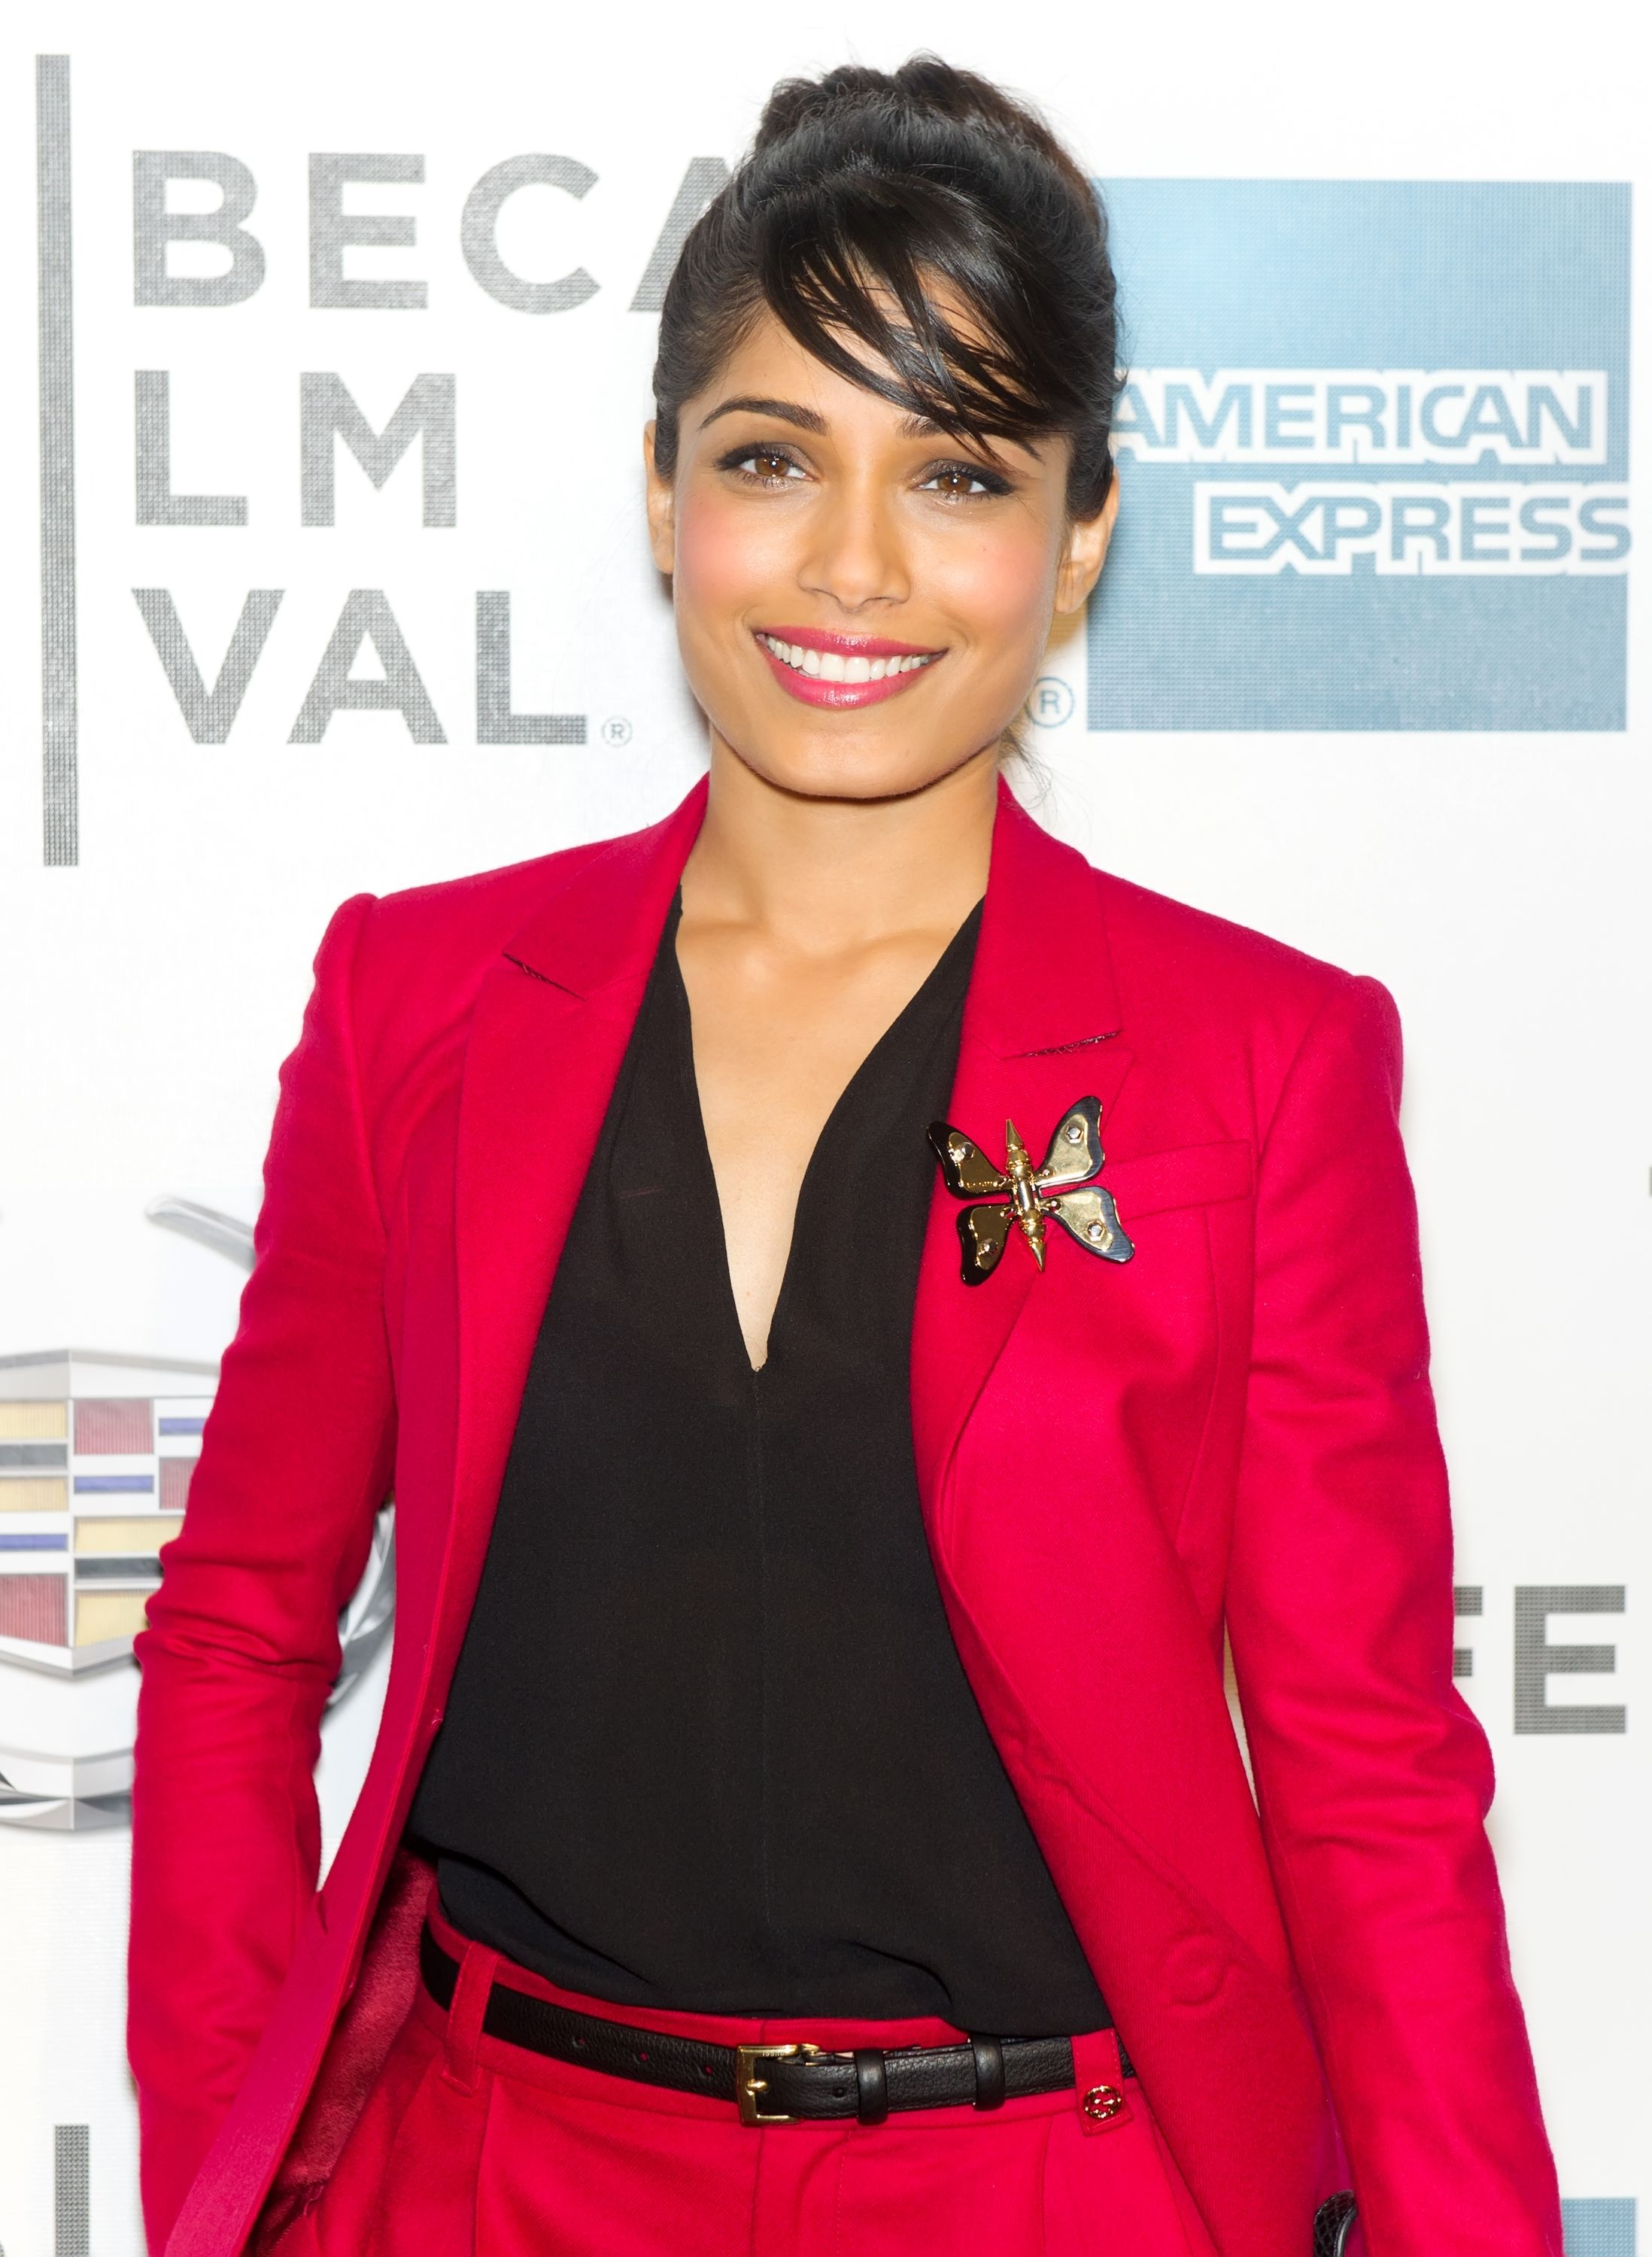 610dbc98fa5 Freida Pinto added a whimsical touch to her red Gucci suit with a black and  gold butterfly brooch.